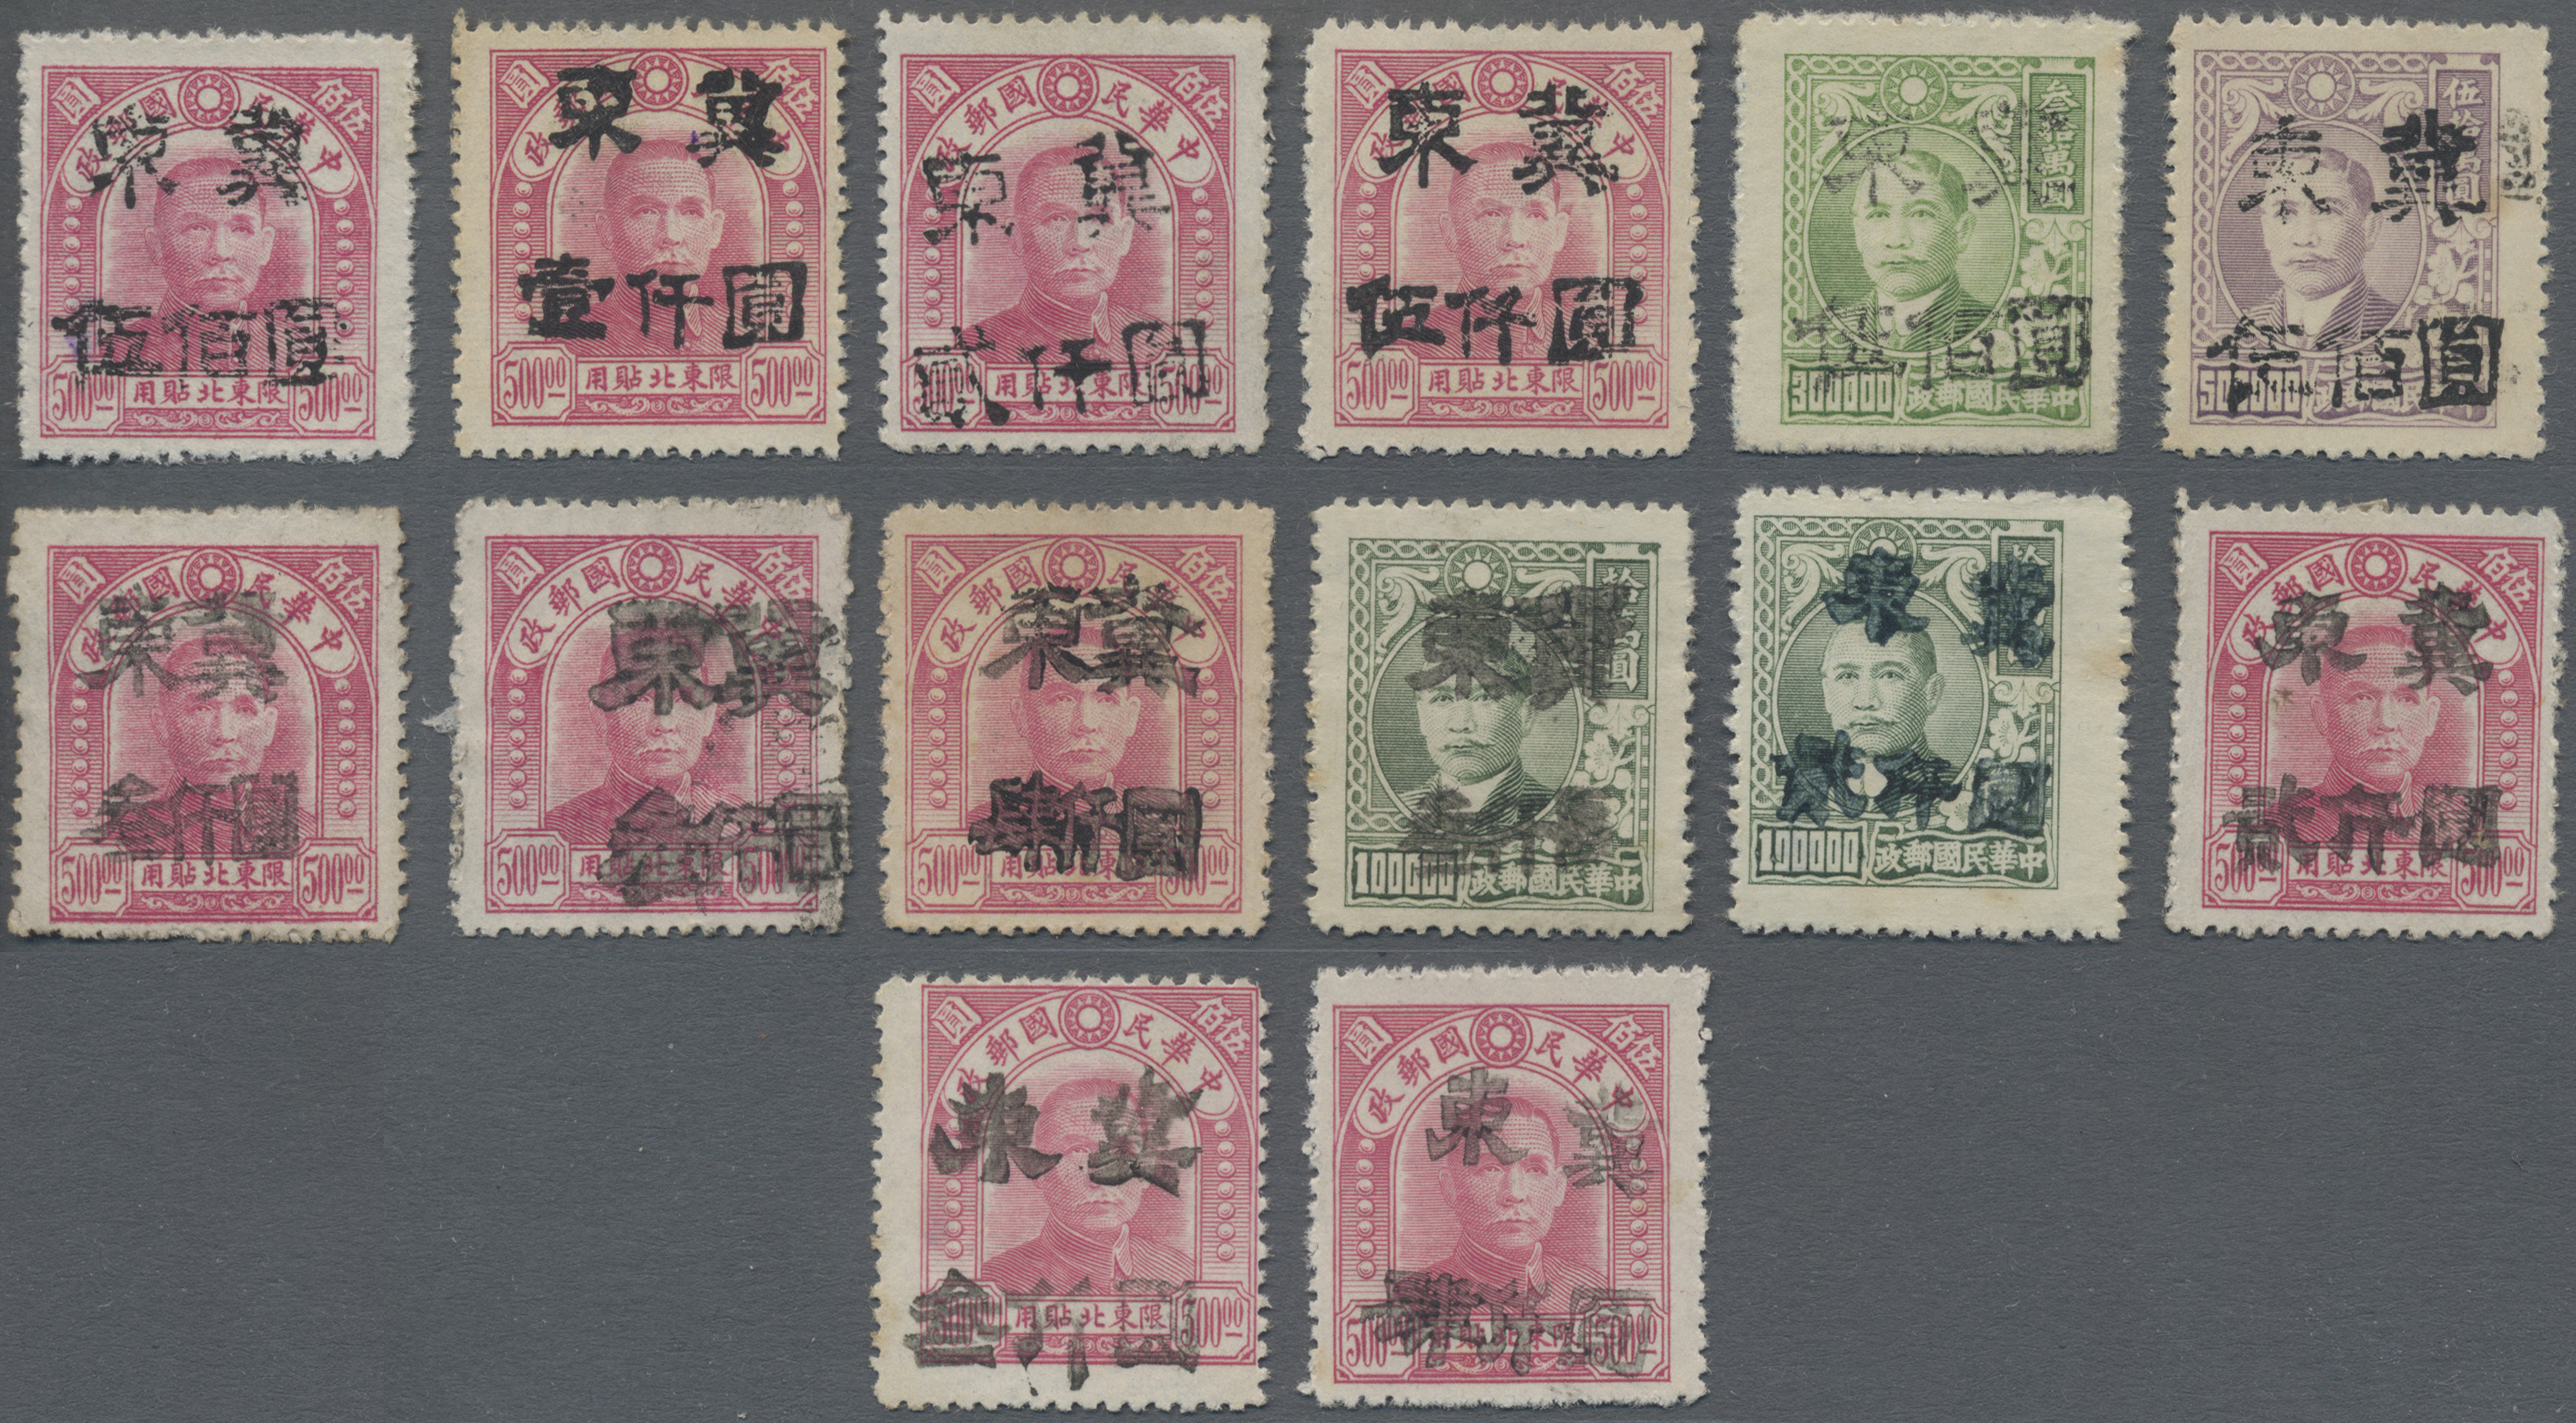 Lot 05015 - China - Volksrepublik - Provinzen  -  Auktionshaus Christoph Gärtner GmbH & Co. KG Sale #46 Special Auction China - including Liberated Areas